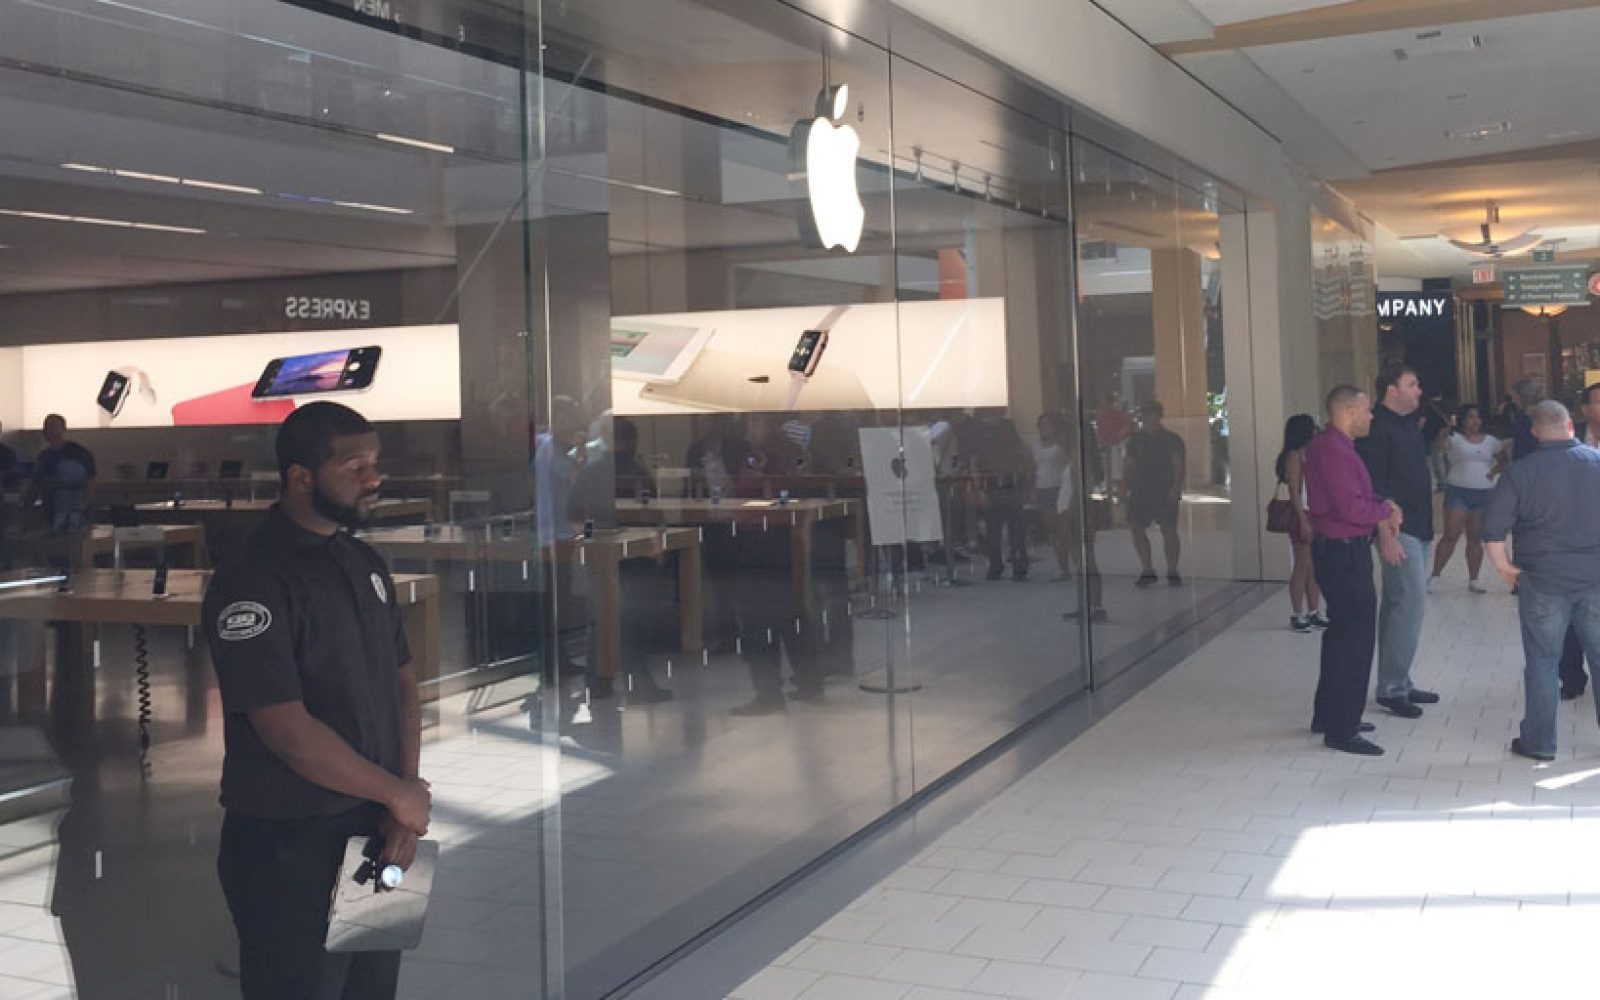 NY Apple Store Employee Charged With Using Fraudulent Card Details To Buy Almost 1M Worth Of Gift Cards